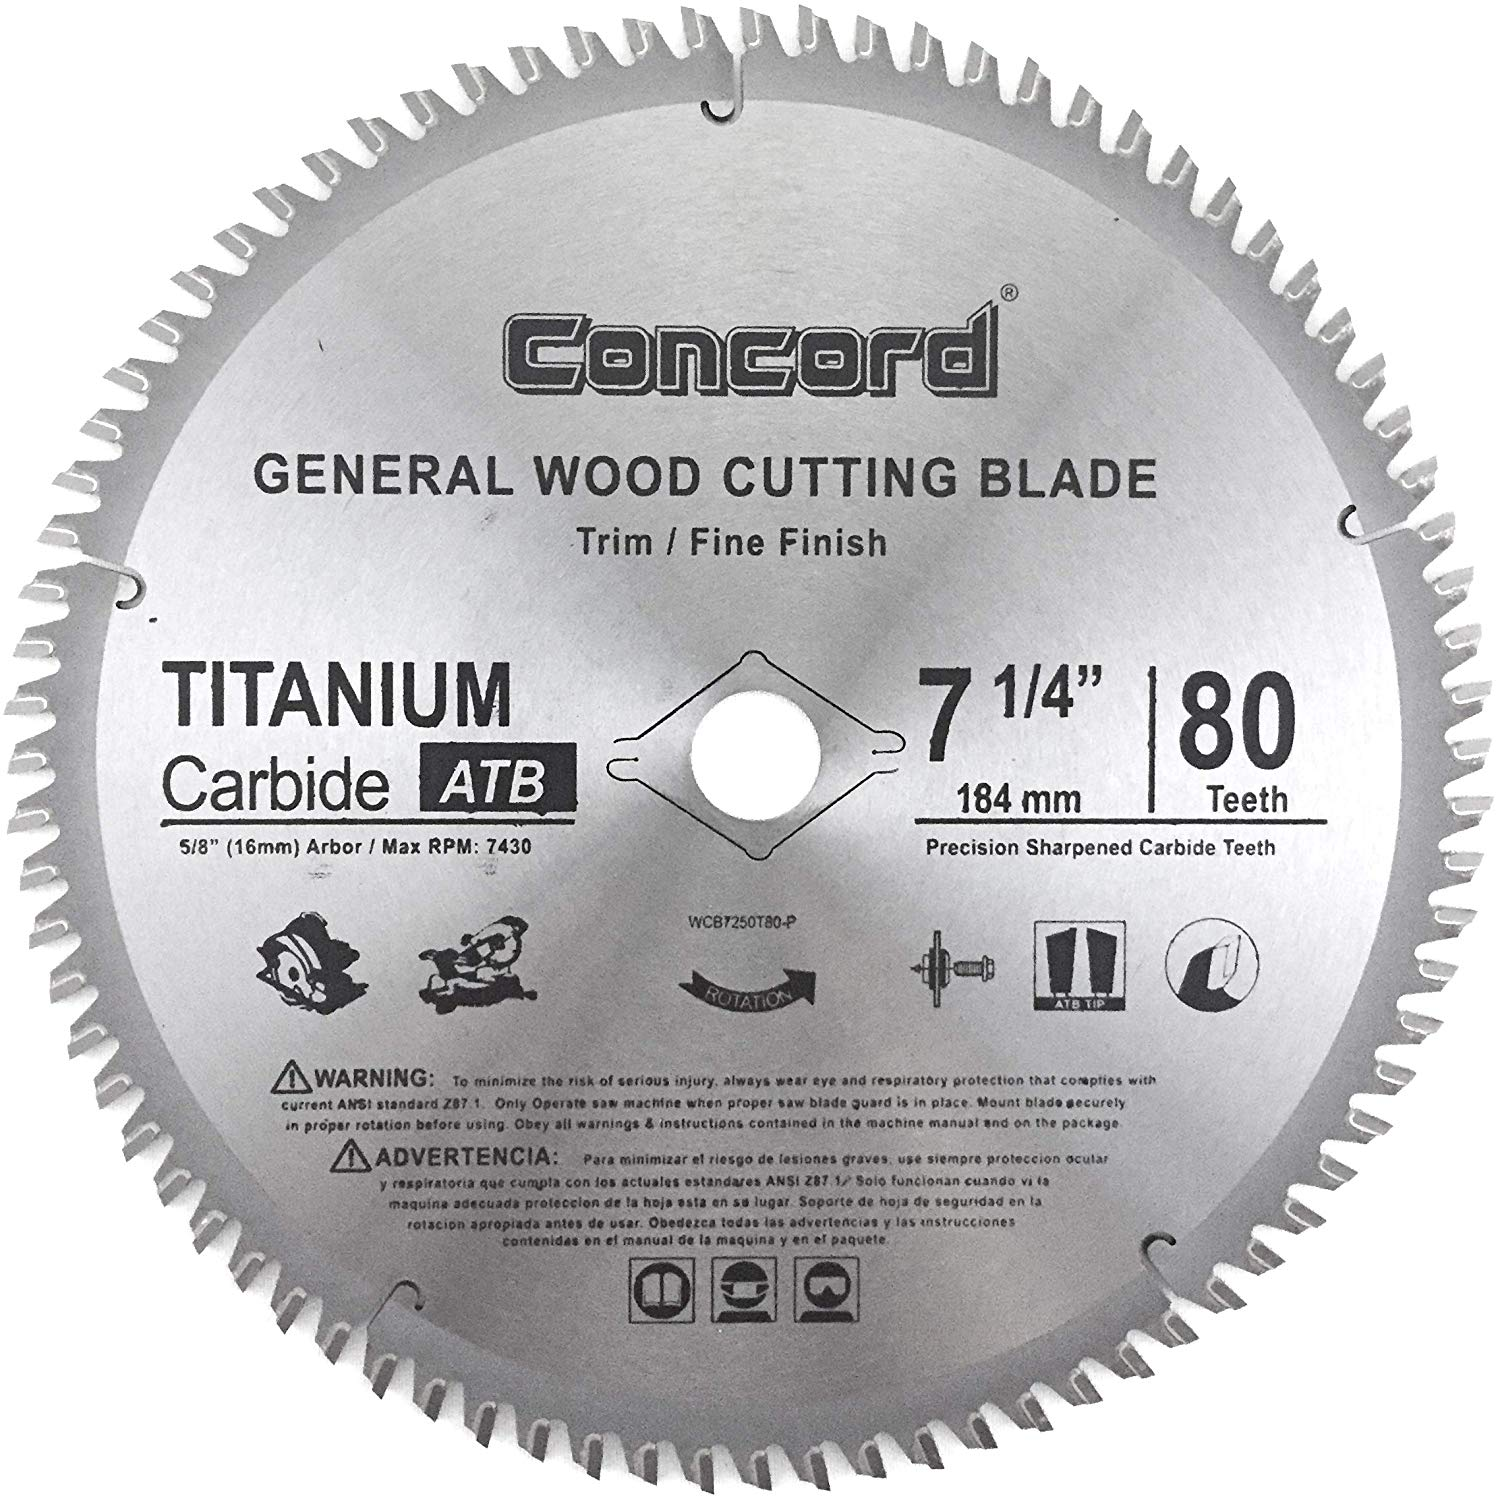 Best 7 1 4 Circular Saw Blades Of 2021 Complete Review Tool Tango